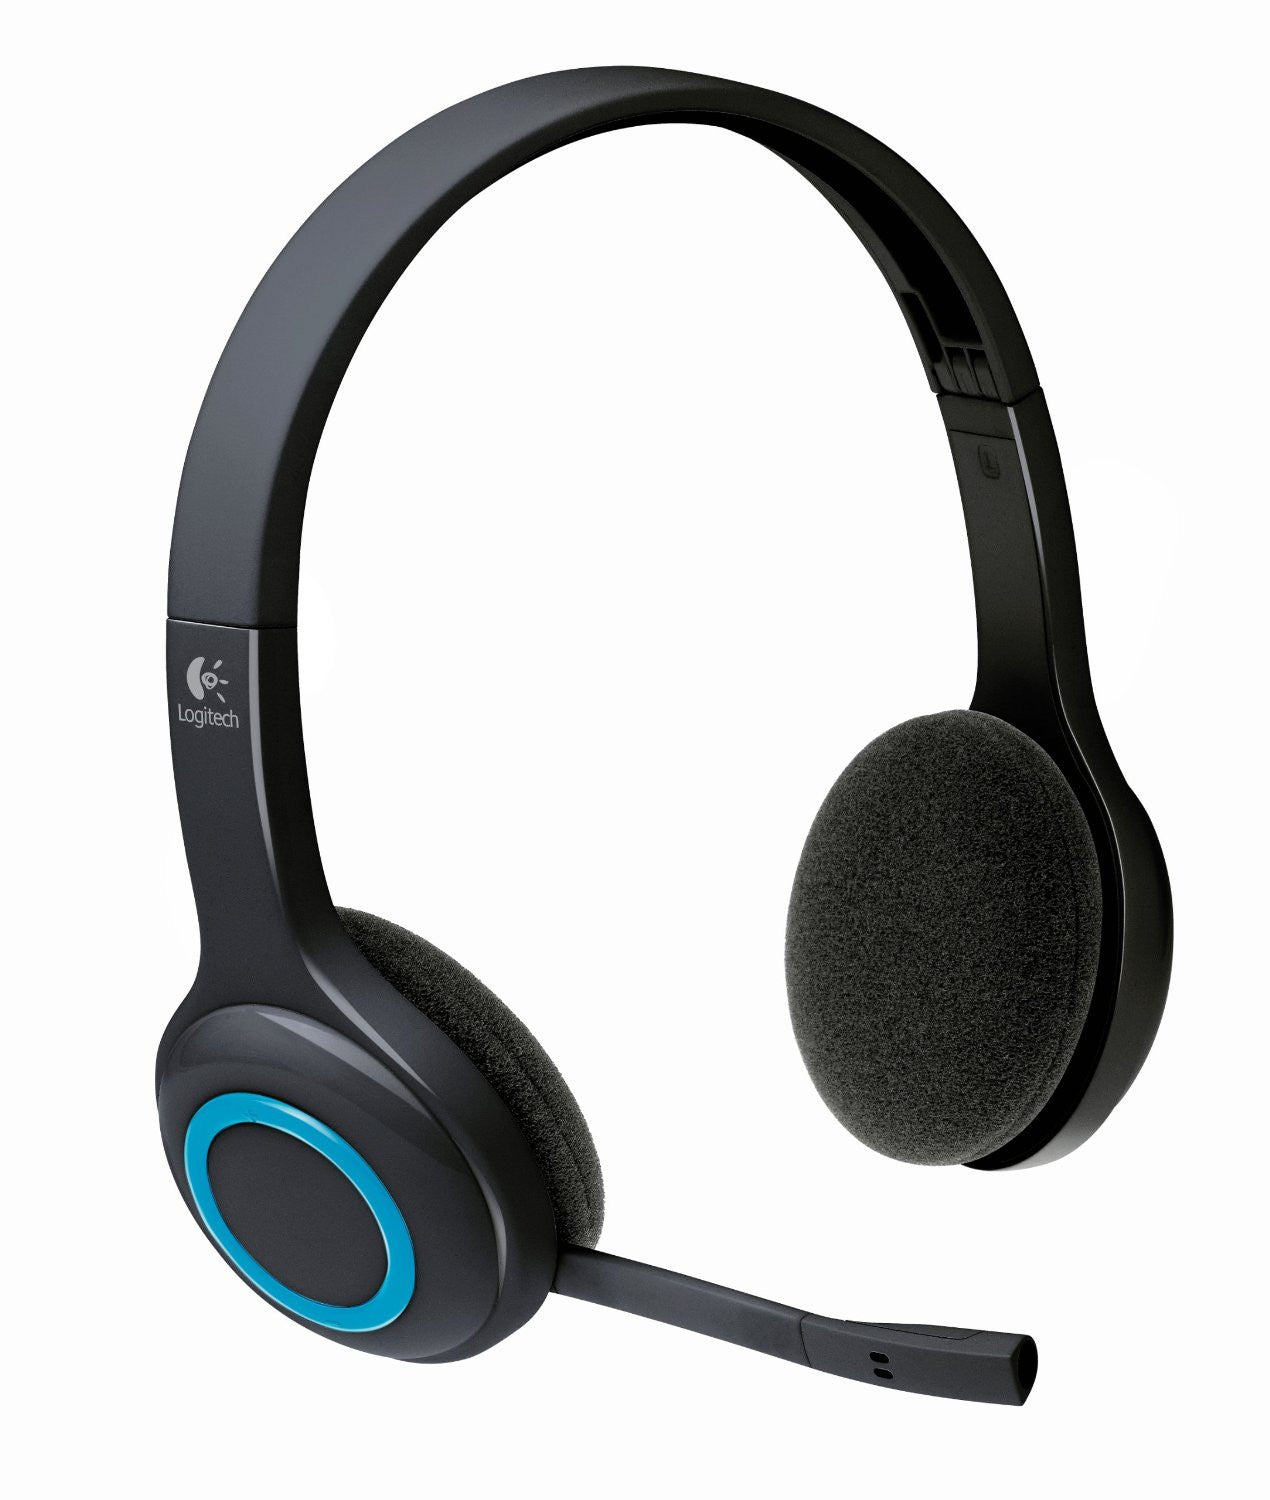 Logitech H 600 Wireless Headset